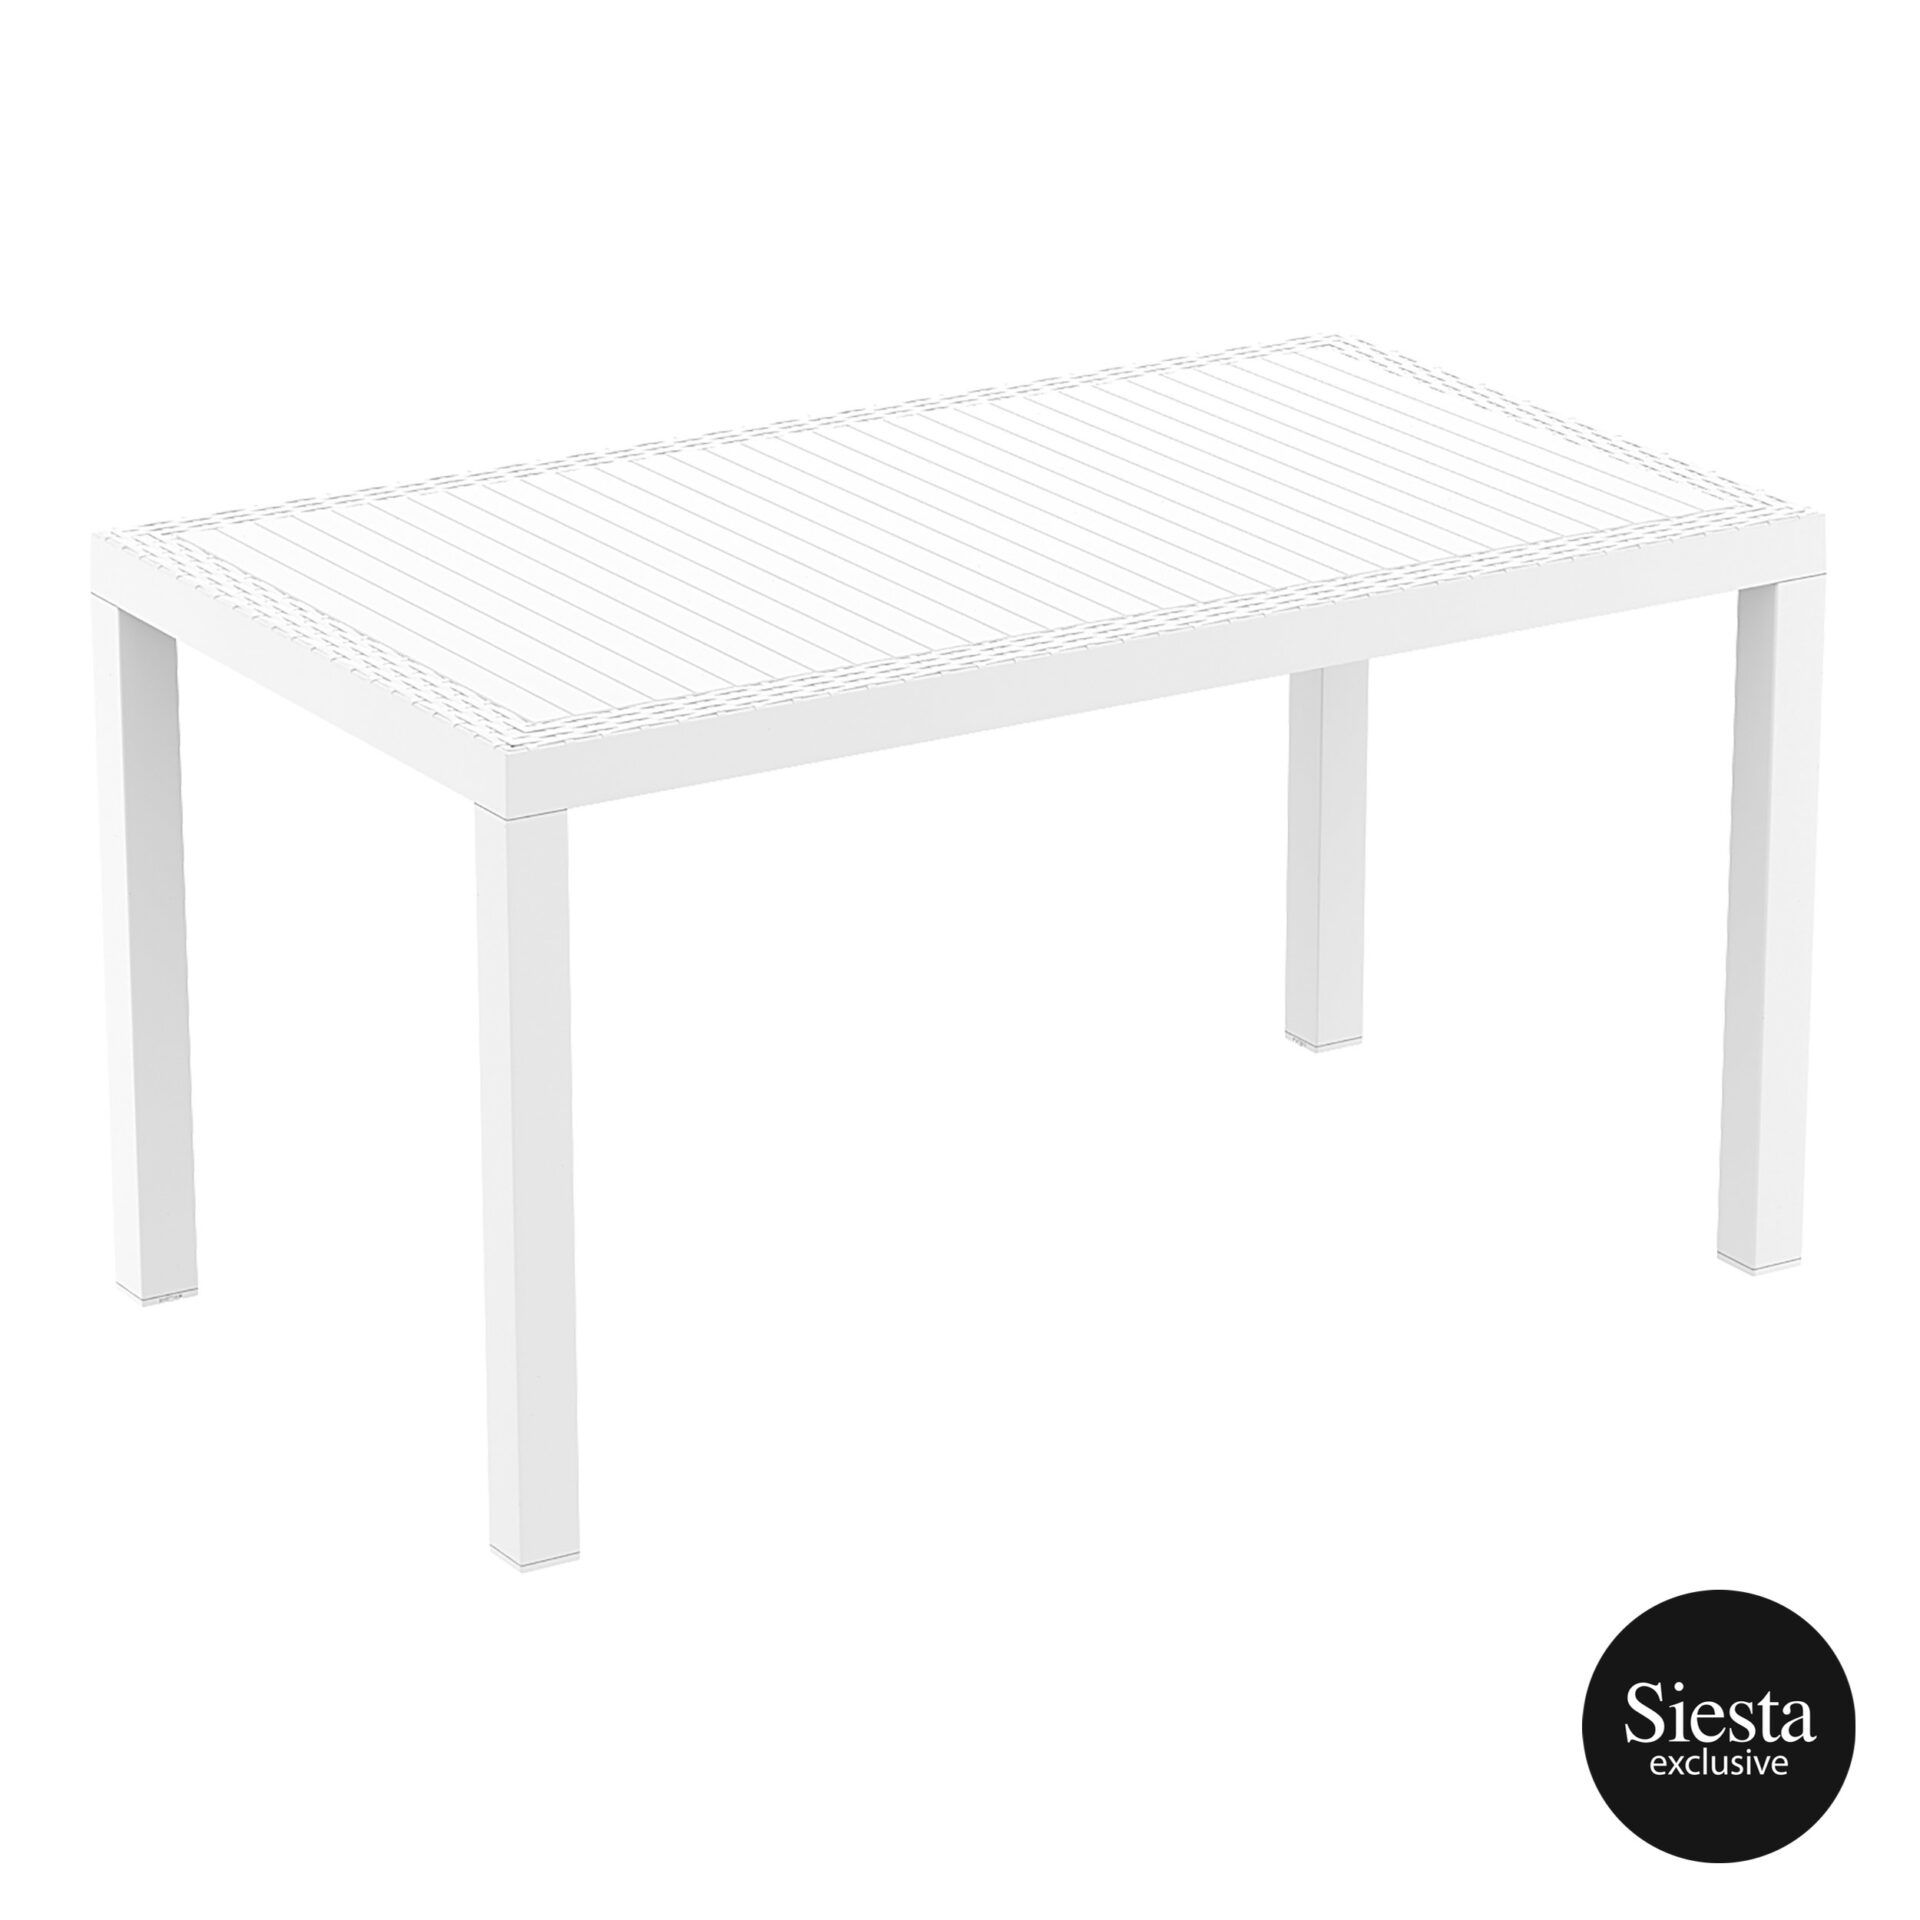 outdoor resin rattan cafe plastic top bali table 140 white front side 1